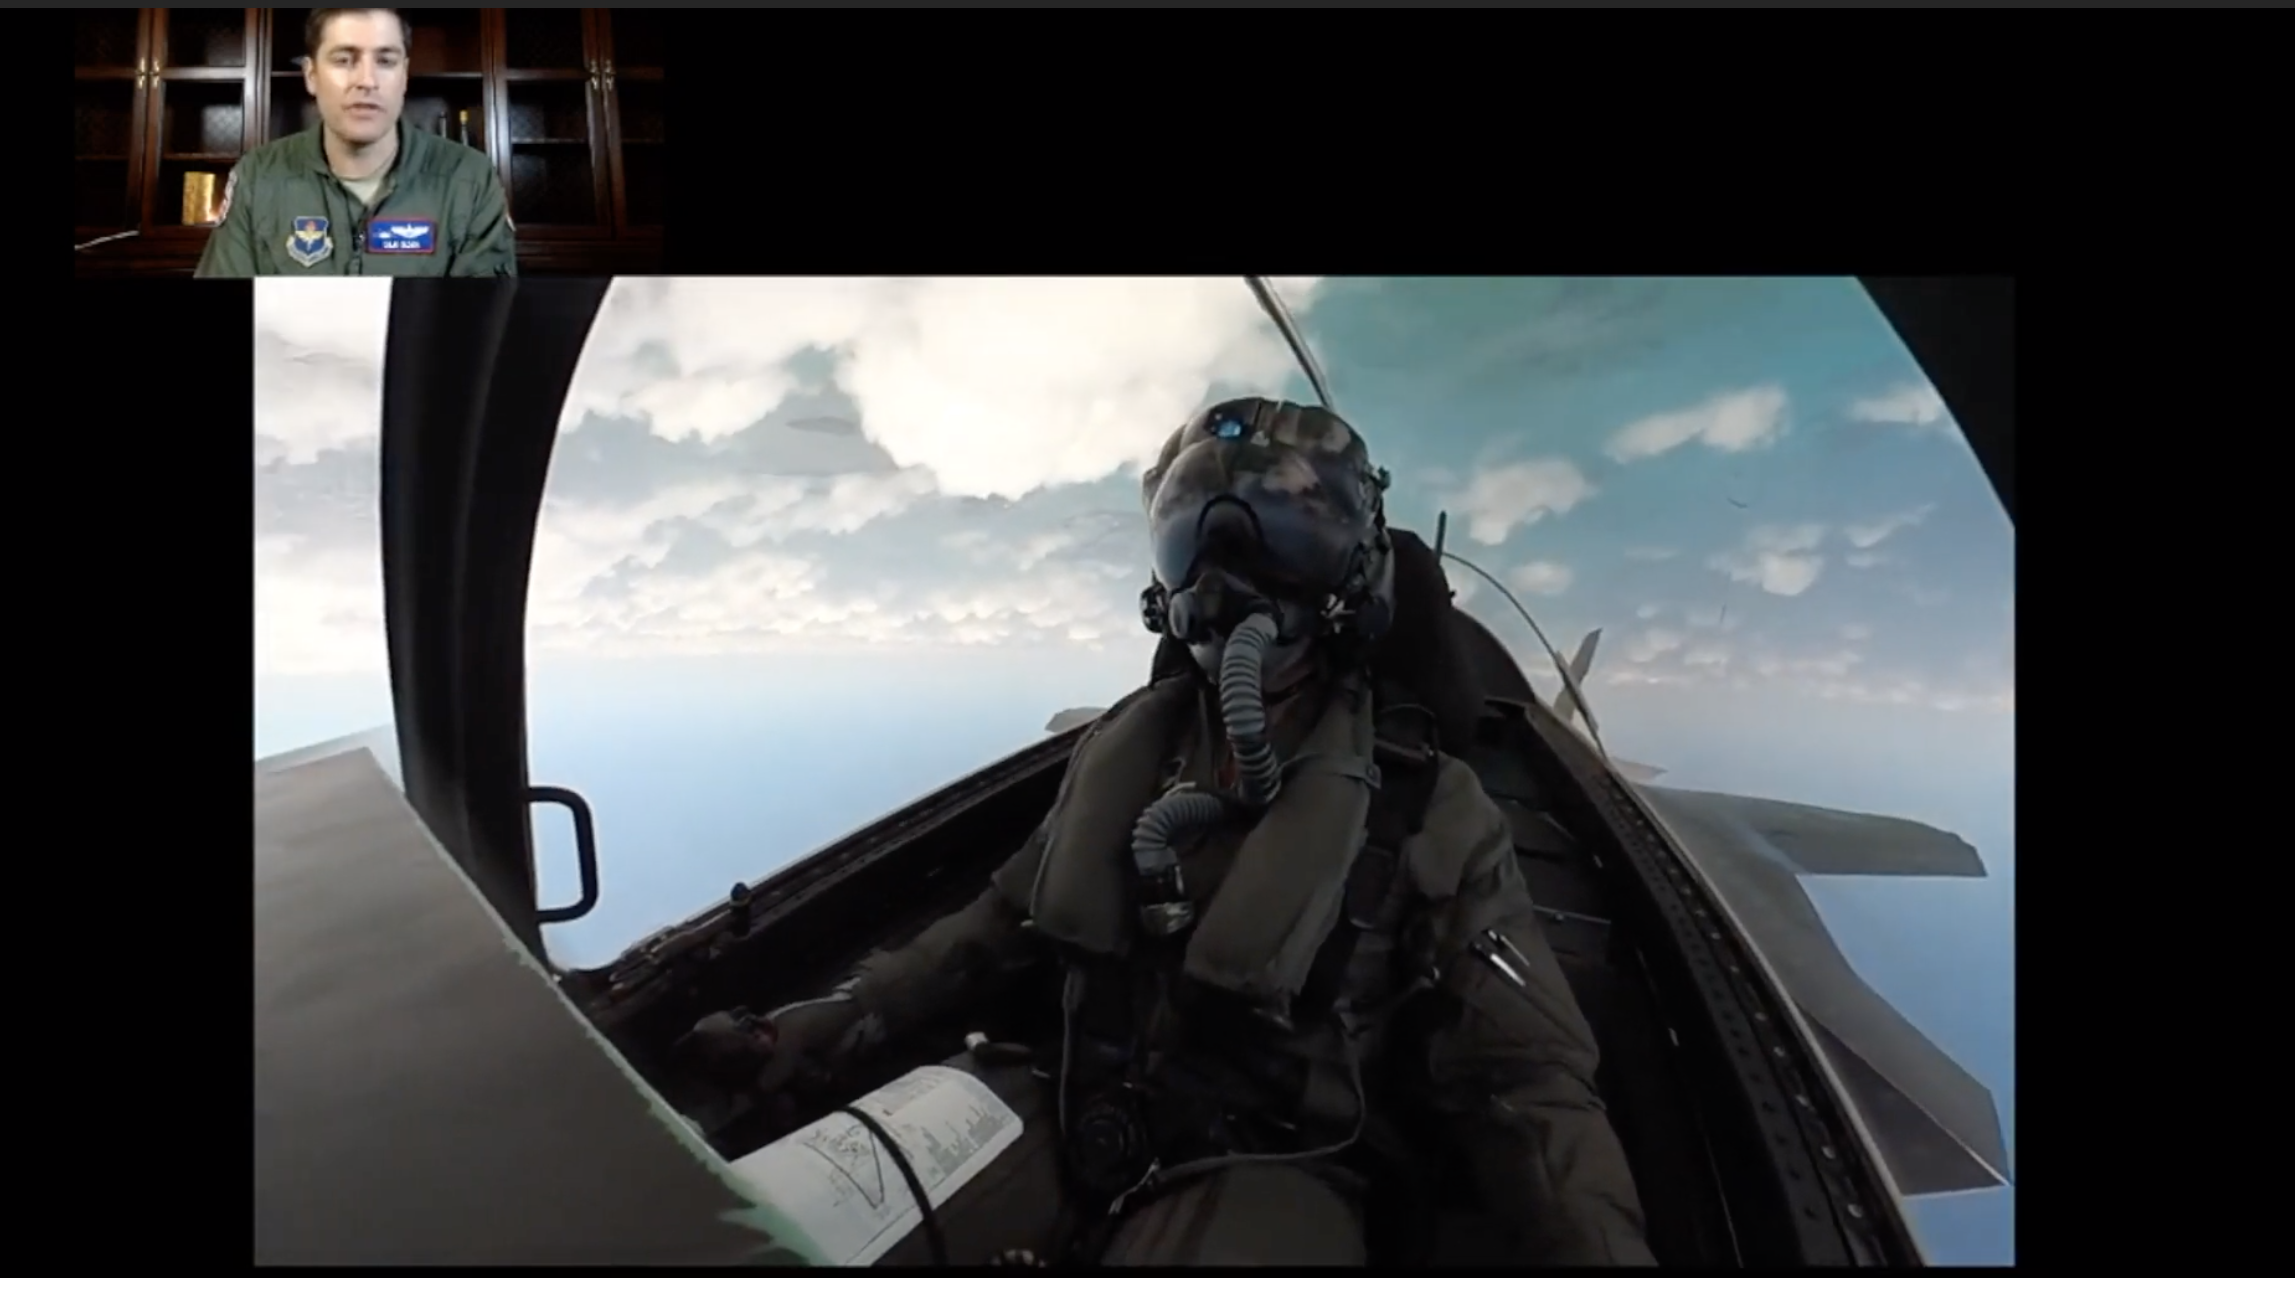 An F-35 Pilot Gives a Play-by-Play of His Own Aerial Stunts